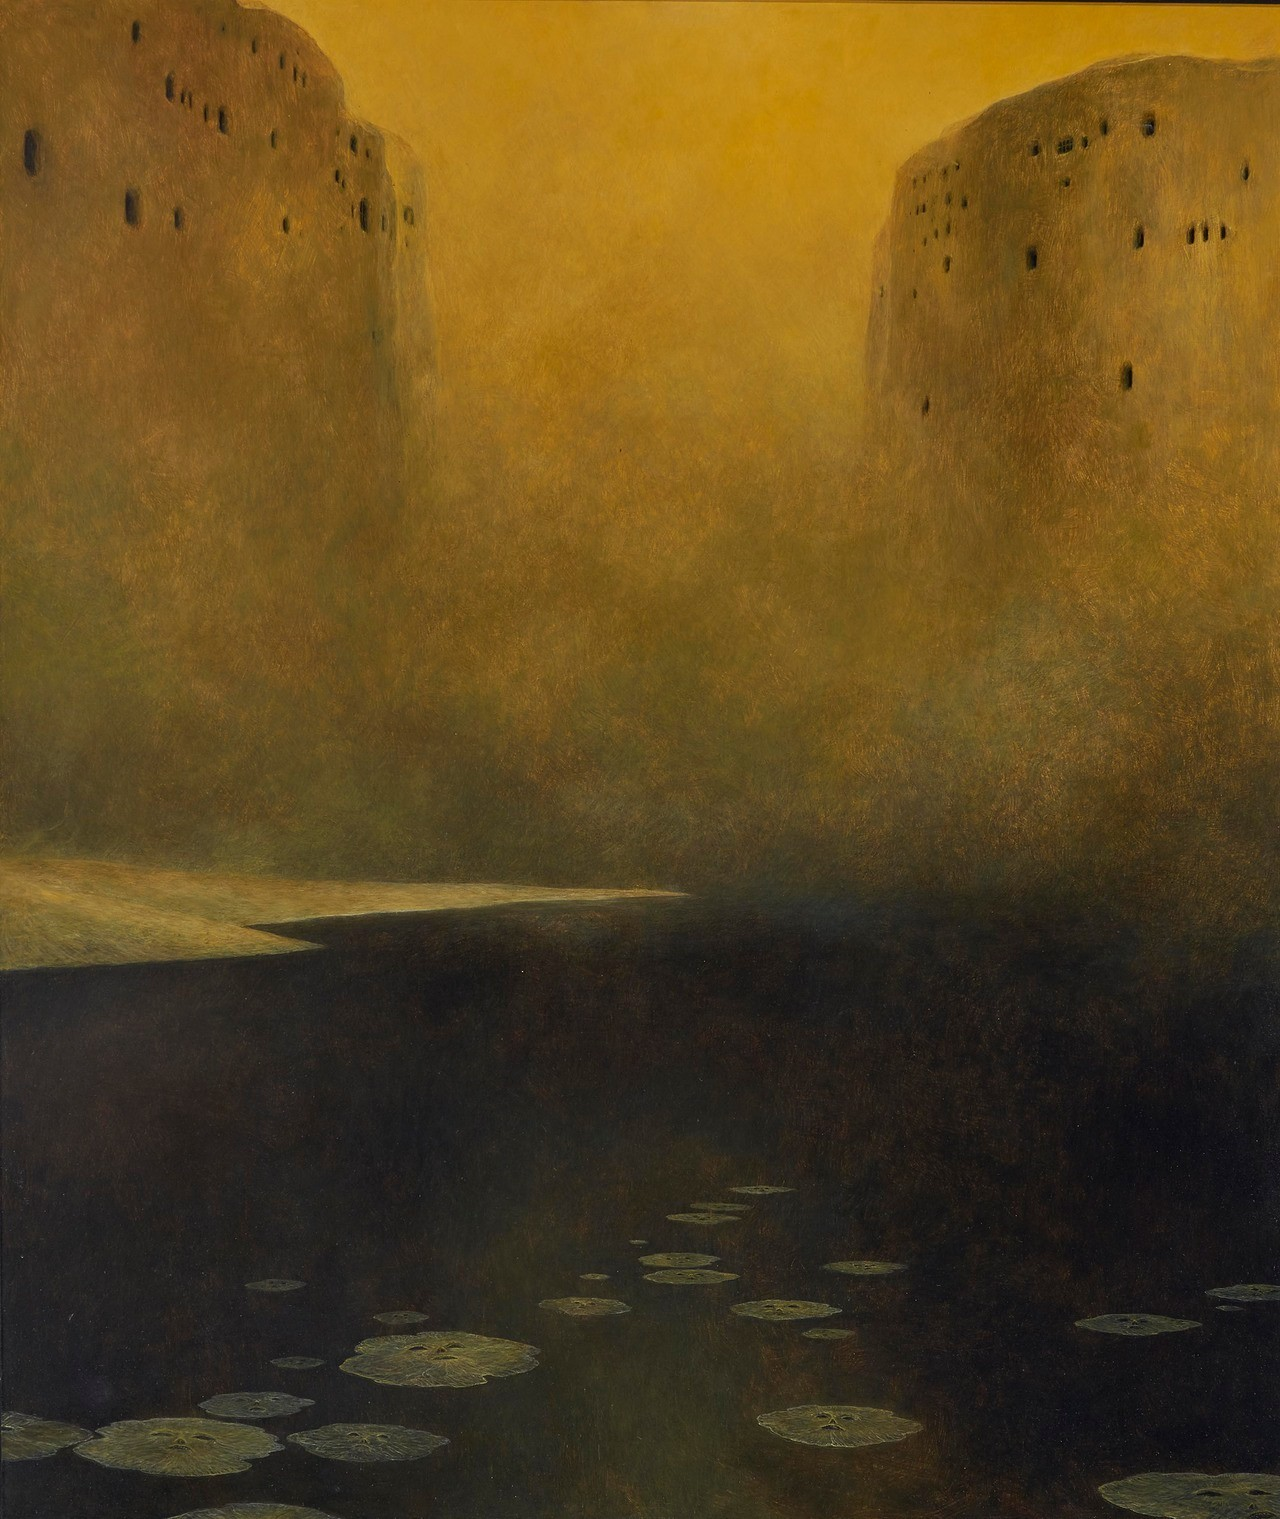 Zdzisław Beksiński (Polish, 1929-2005, b. Sanok, Poland) - Untitled (Landschaft), 1978  Paintings: Oil on Hardboard